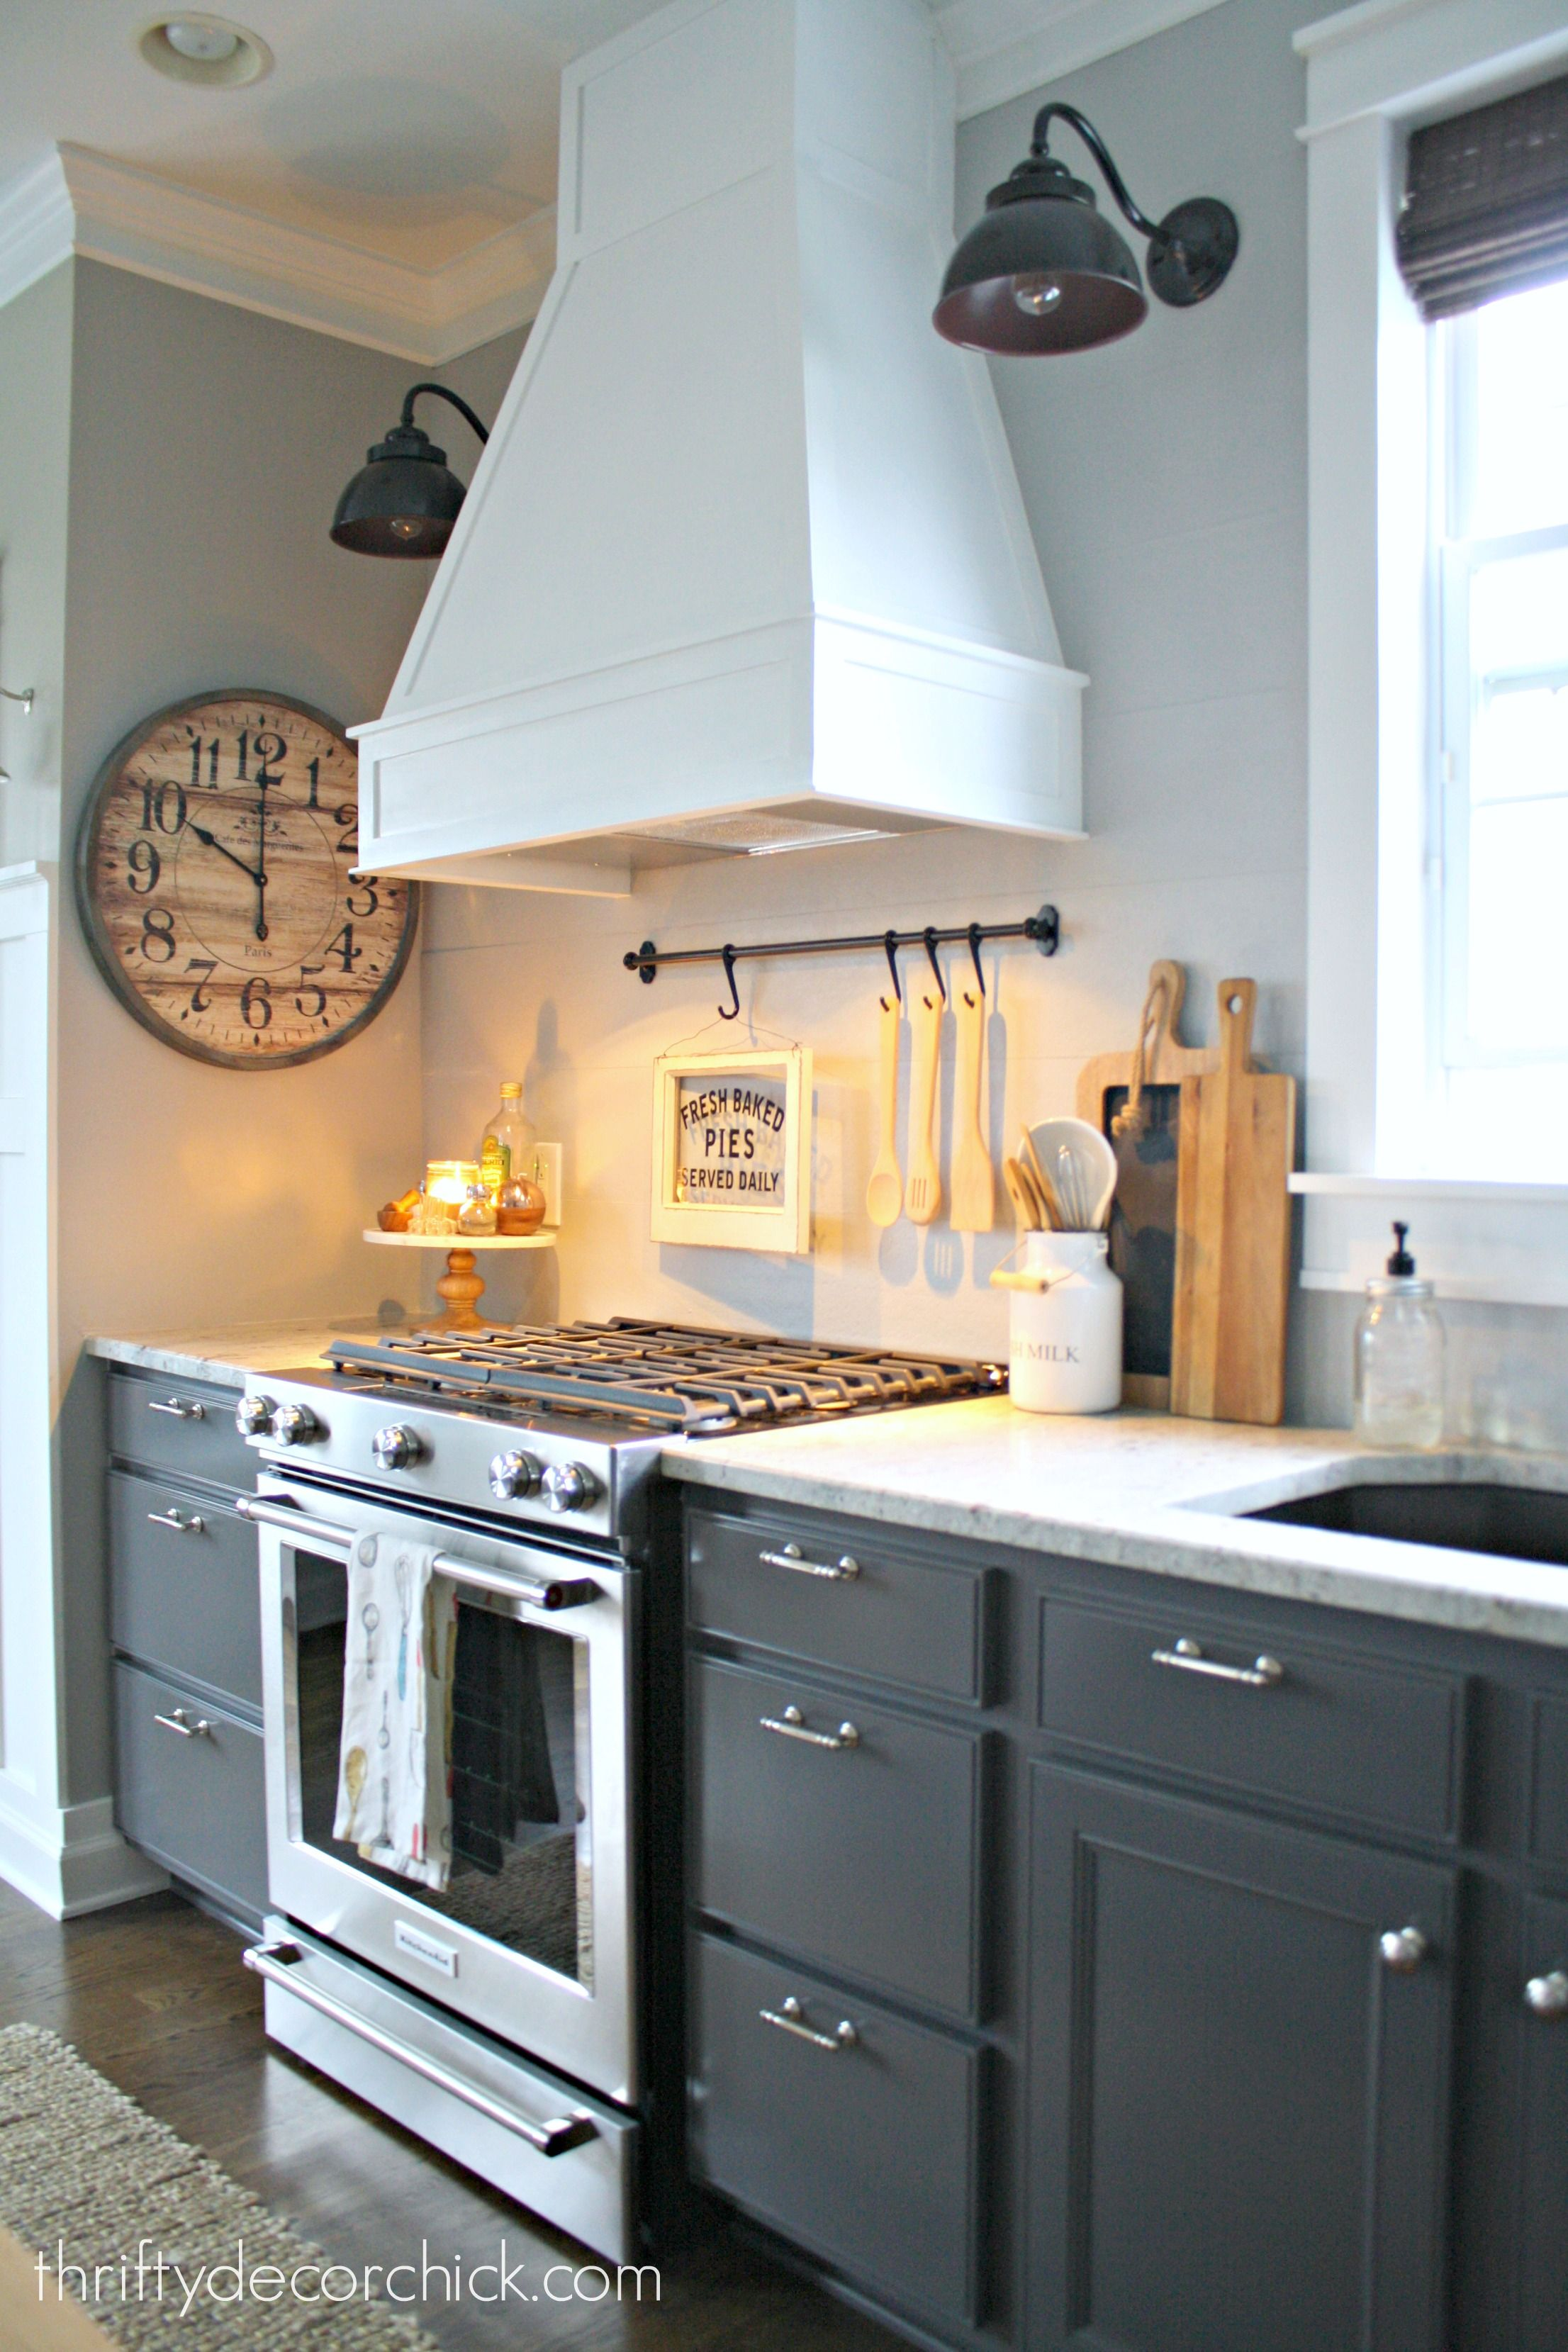 How To Install A Vented Range Hood And Build A Decorative Wood Hood Over  The Range.